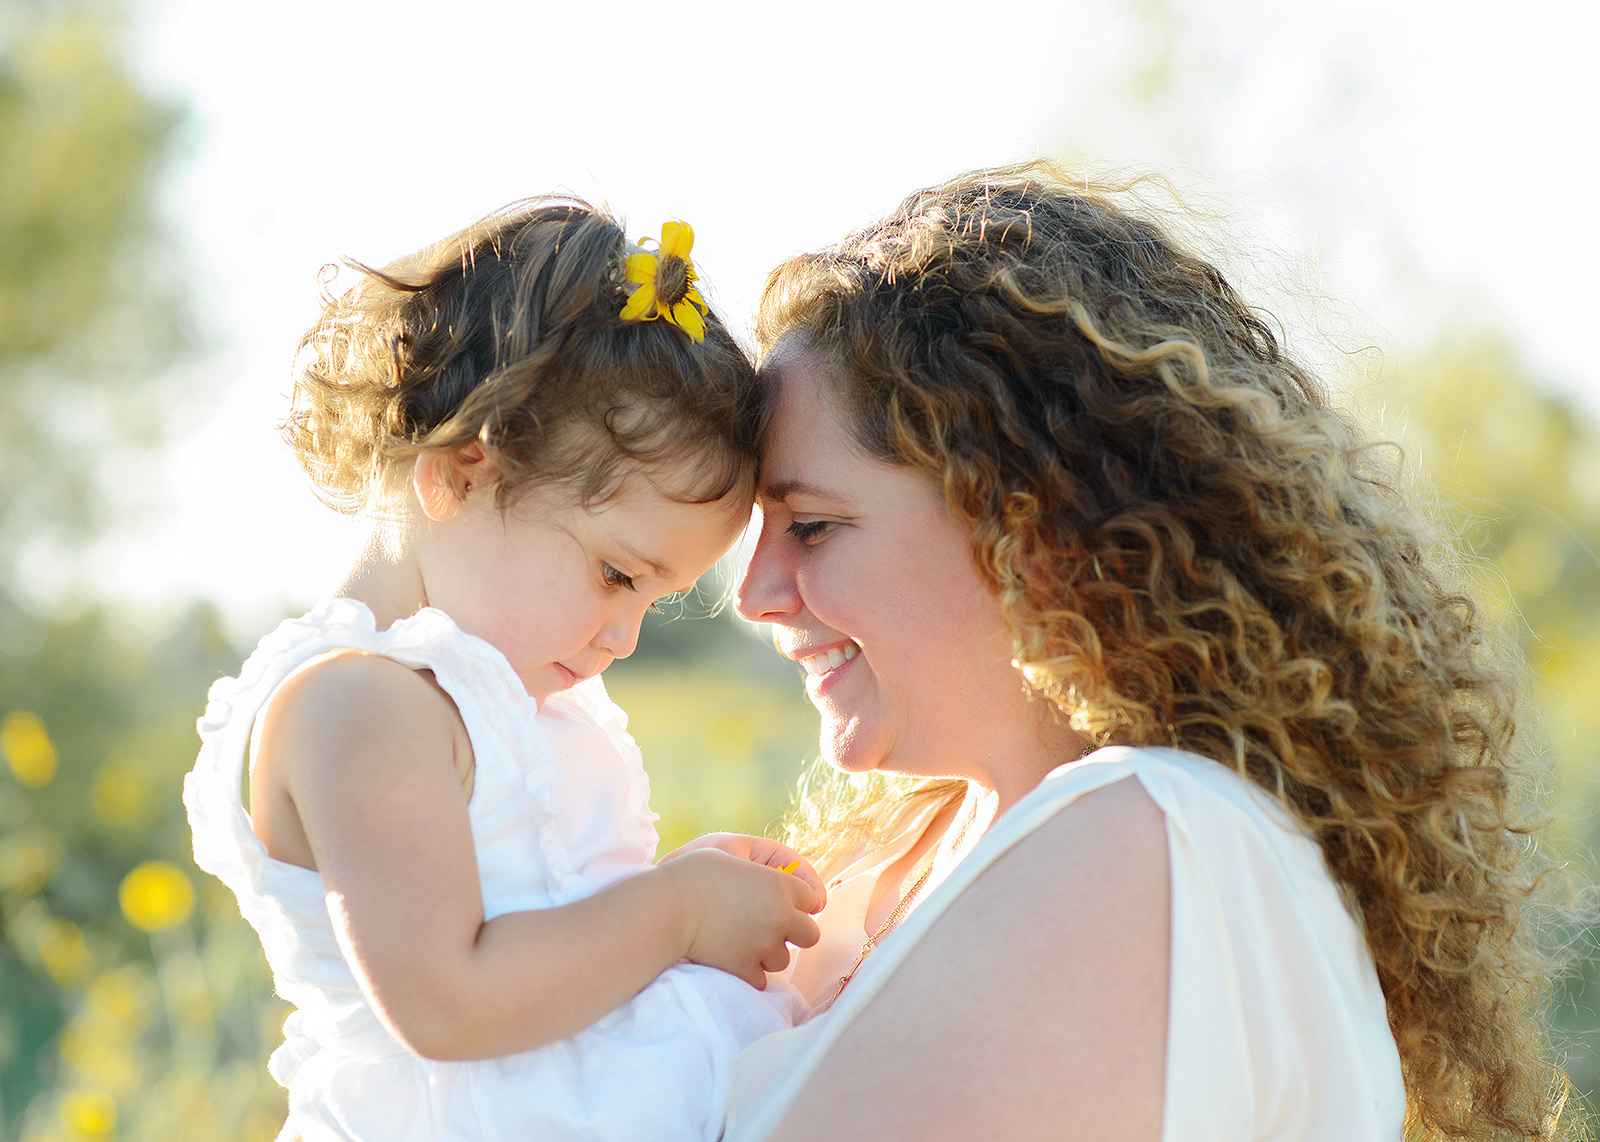 Mom and Daughter Smiling at Each Other in Natural Light with Wildflowers